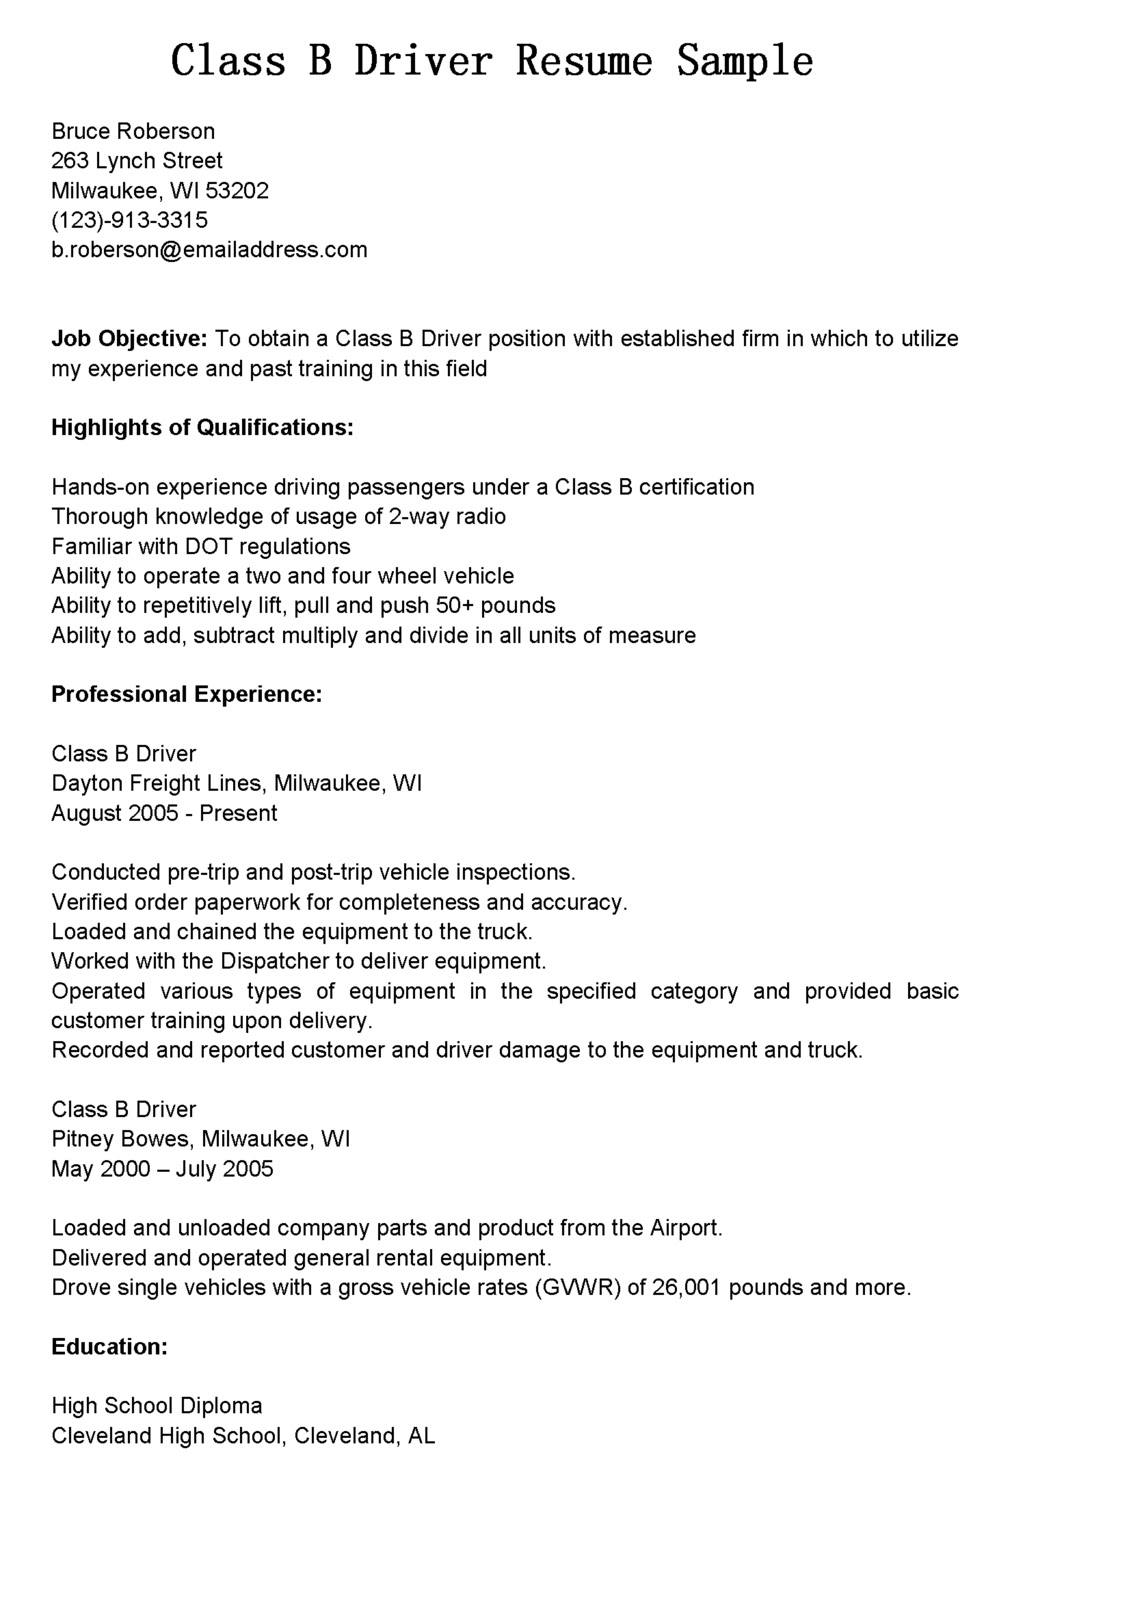 local truck driver cover letter   truck driver resume samples    class b driver resume samples